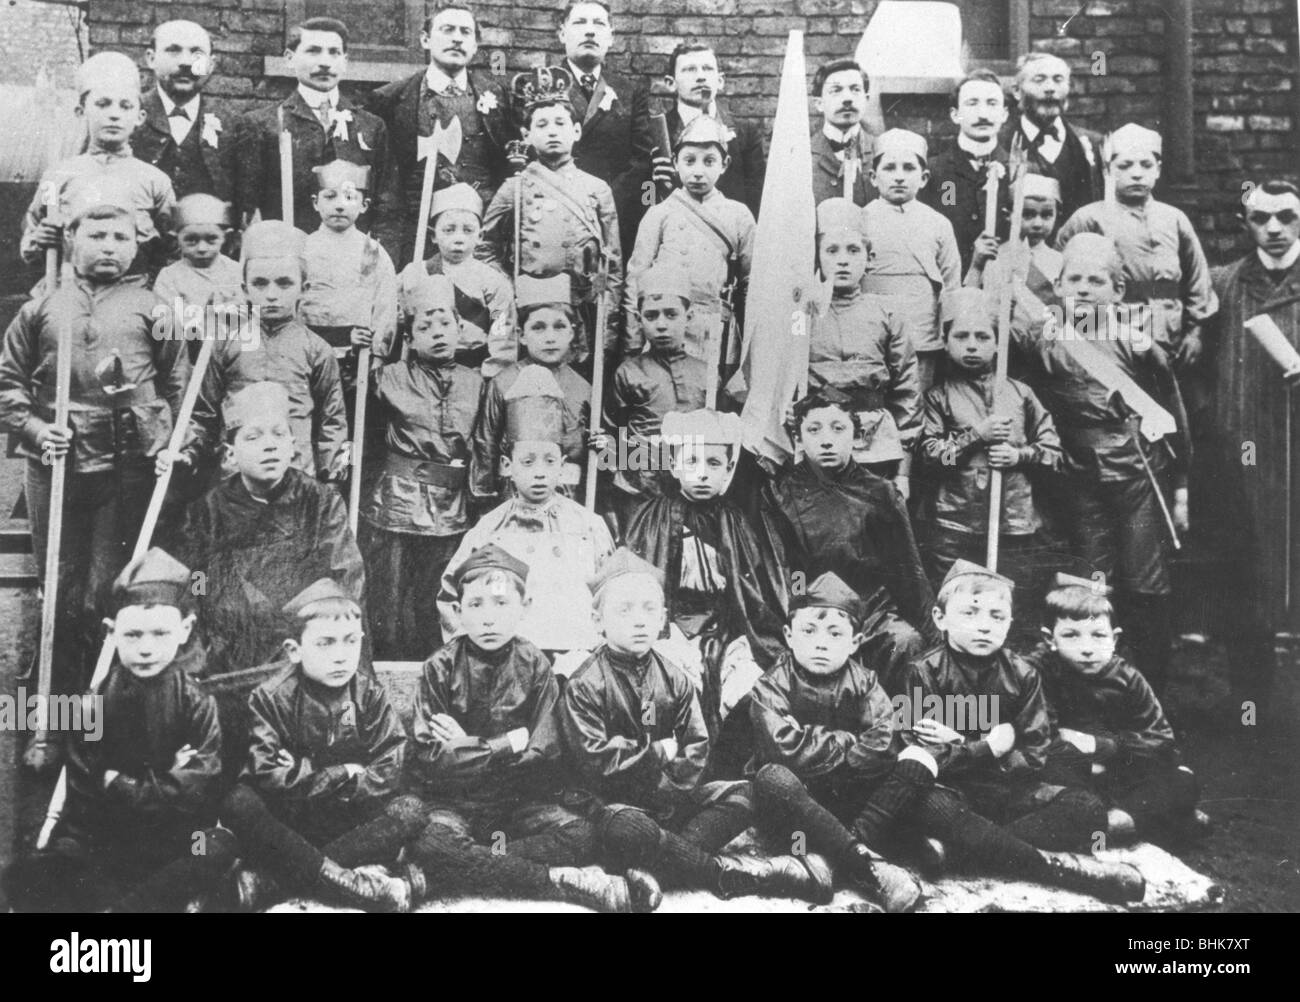 Boys in fancy dress for Purim, before 1914. - Stock Image